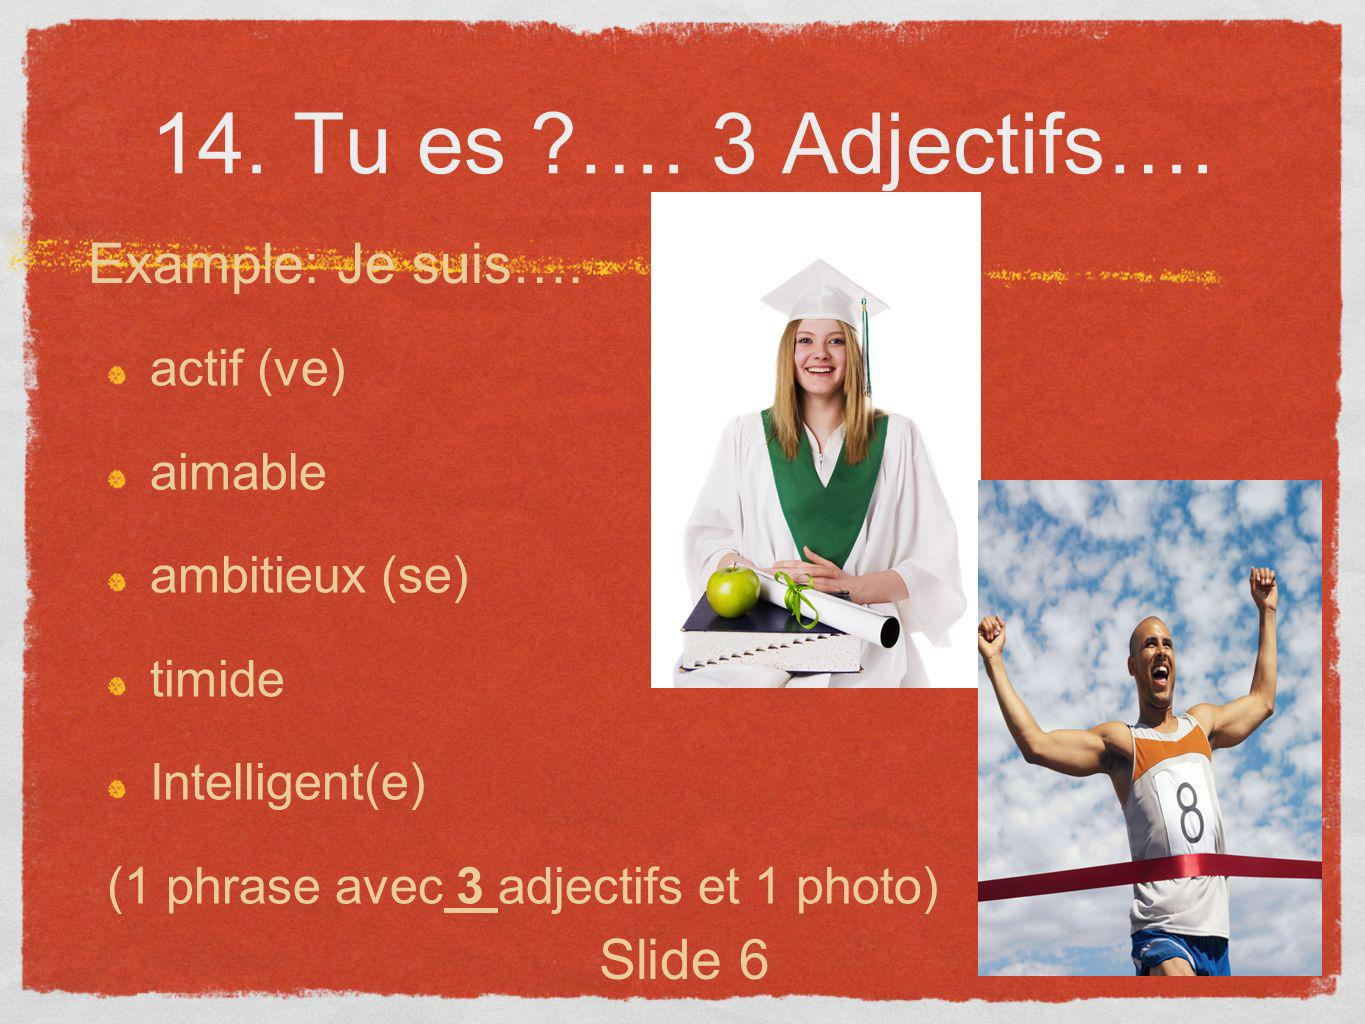 14. Tu es ?…. 3 Adjectifs…. actif (ve) aimable ambitieux (se) timide Intelligent(e) (1 phrase avec 3 adjectifs et 1 photo) Example: Je suis…. Slide 6